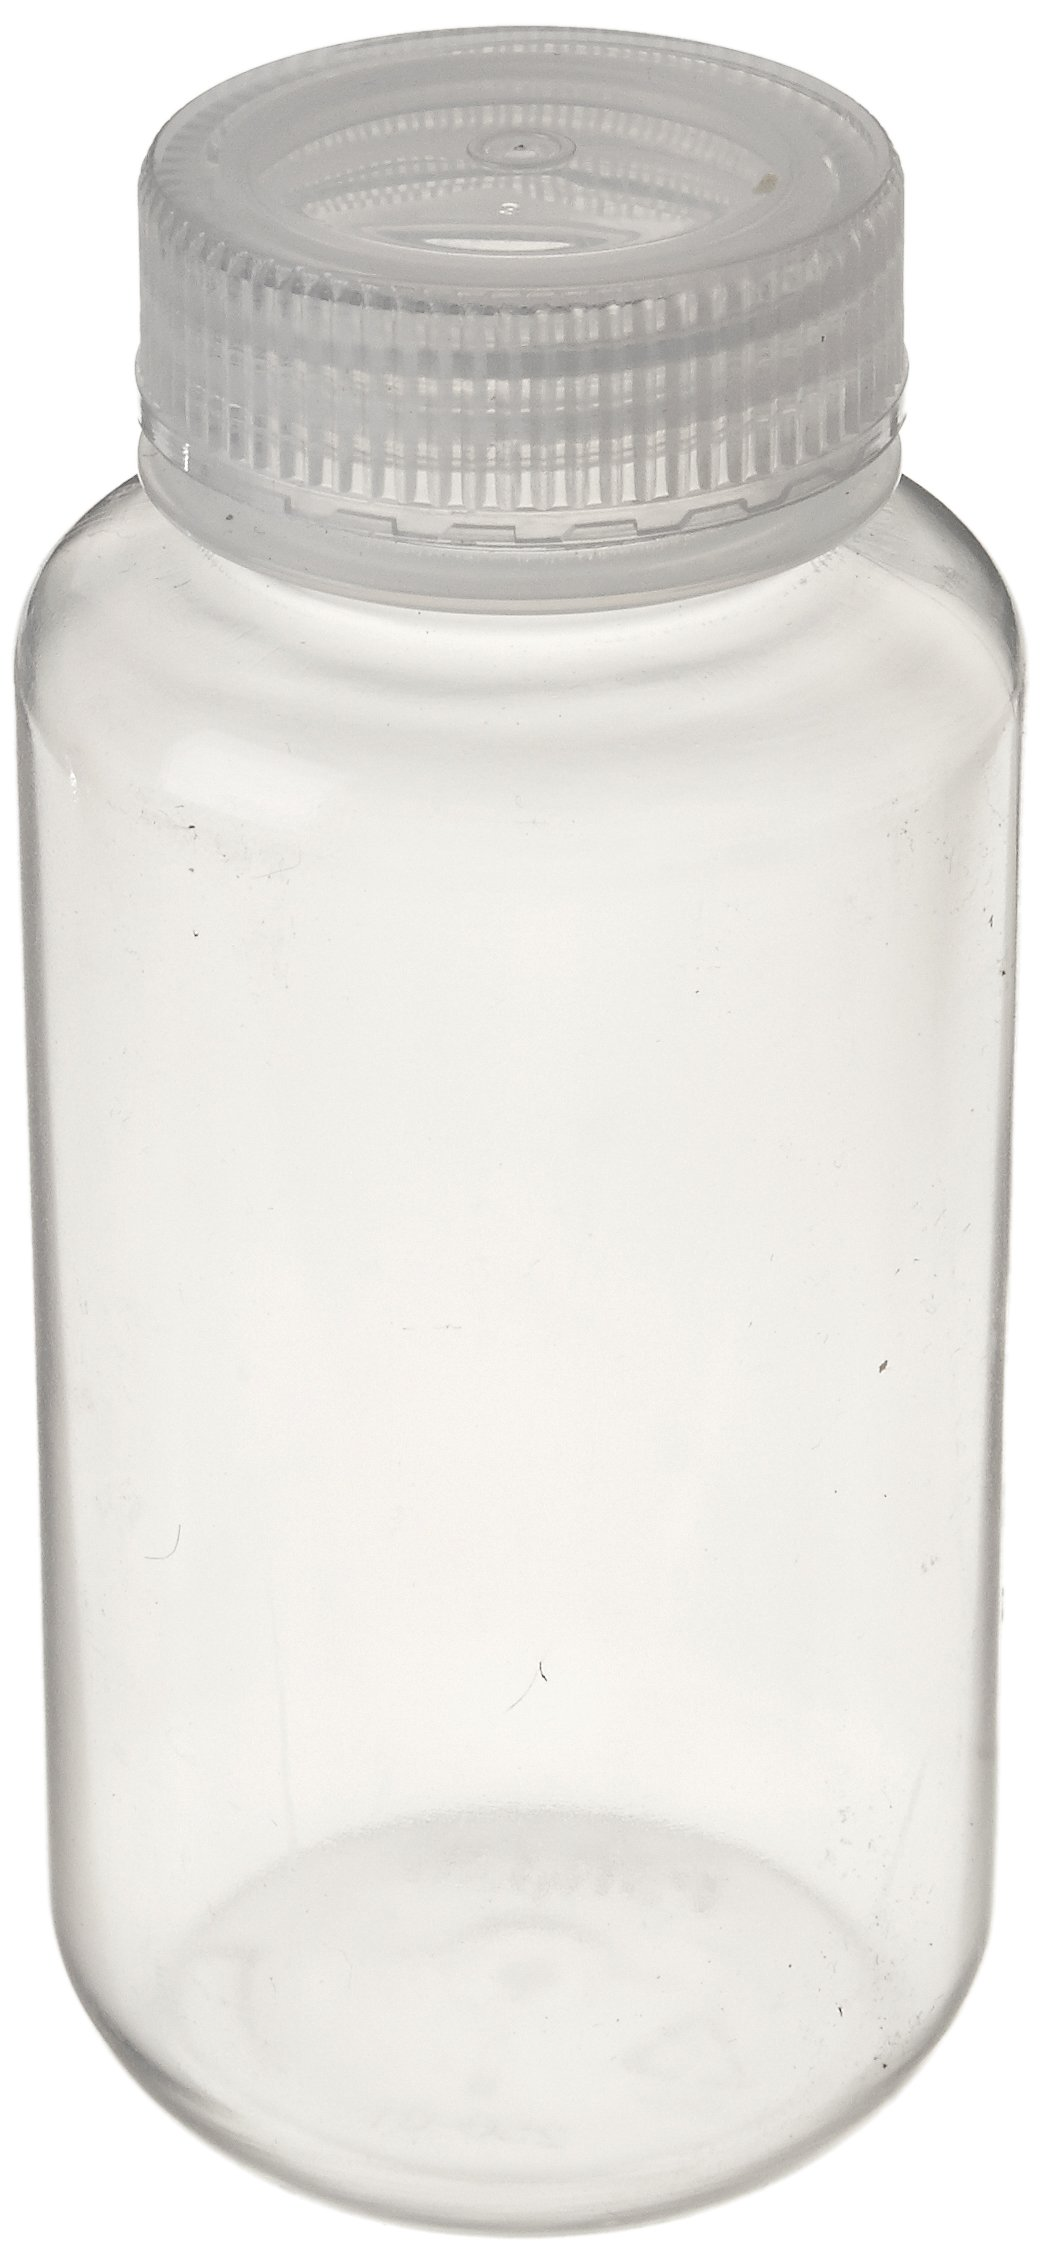 United Scientific 33308 Polypropylene Wide Mouth Reagent Bottles, 250ml Capacity (Pack of 12)